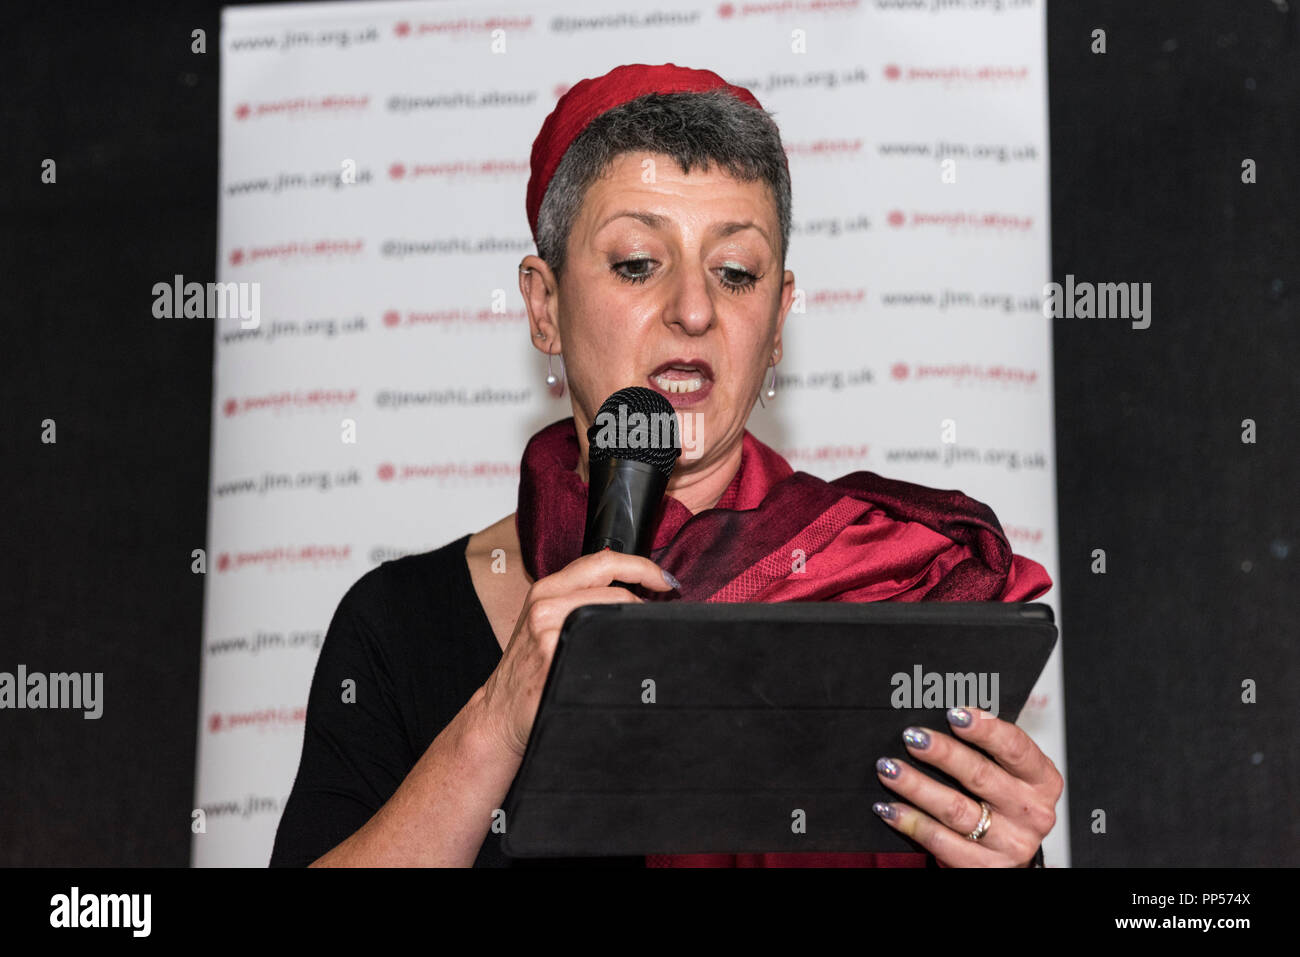 Liverpool, UK. 23rd Sept 2018. Rabbi Laura Janner-Klausner head of Reform Judaism speaking at the Jewish Labour Movement fringe rally at Labour Conference. A packed room, welcomed many speakers. Credit: Rena Pearl/Alamy Live News - Stock Image